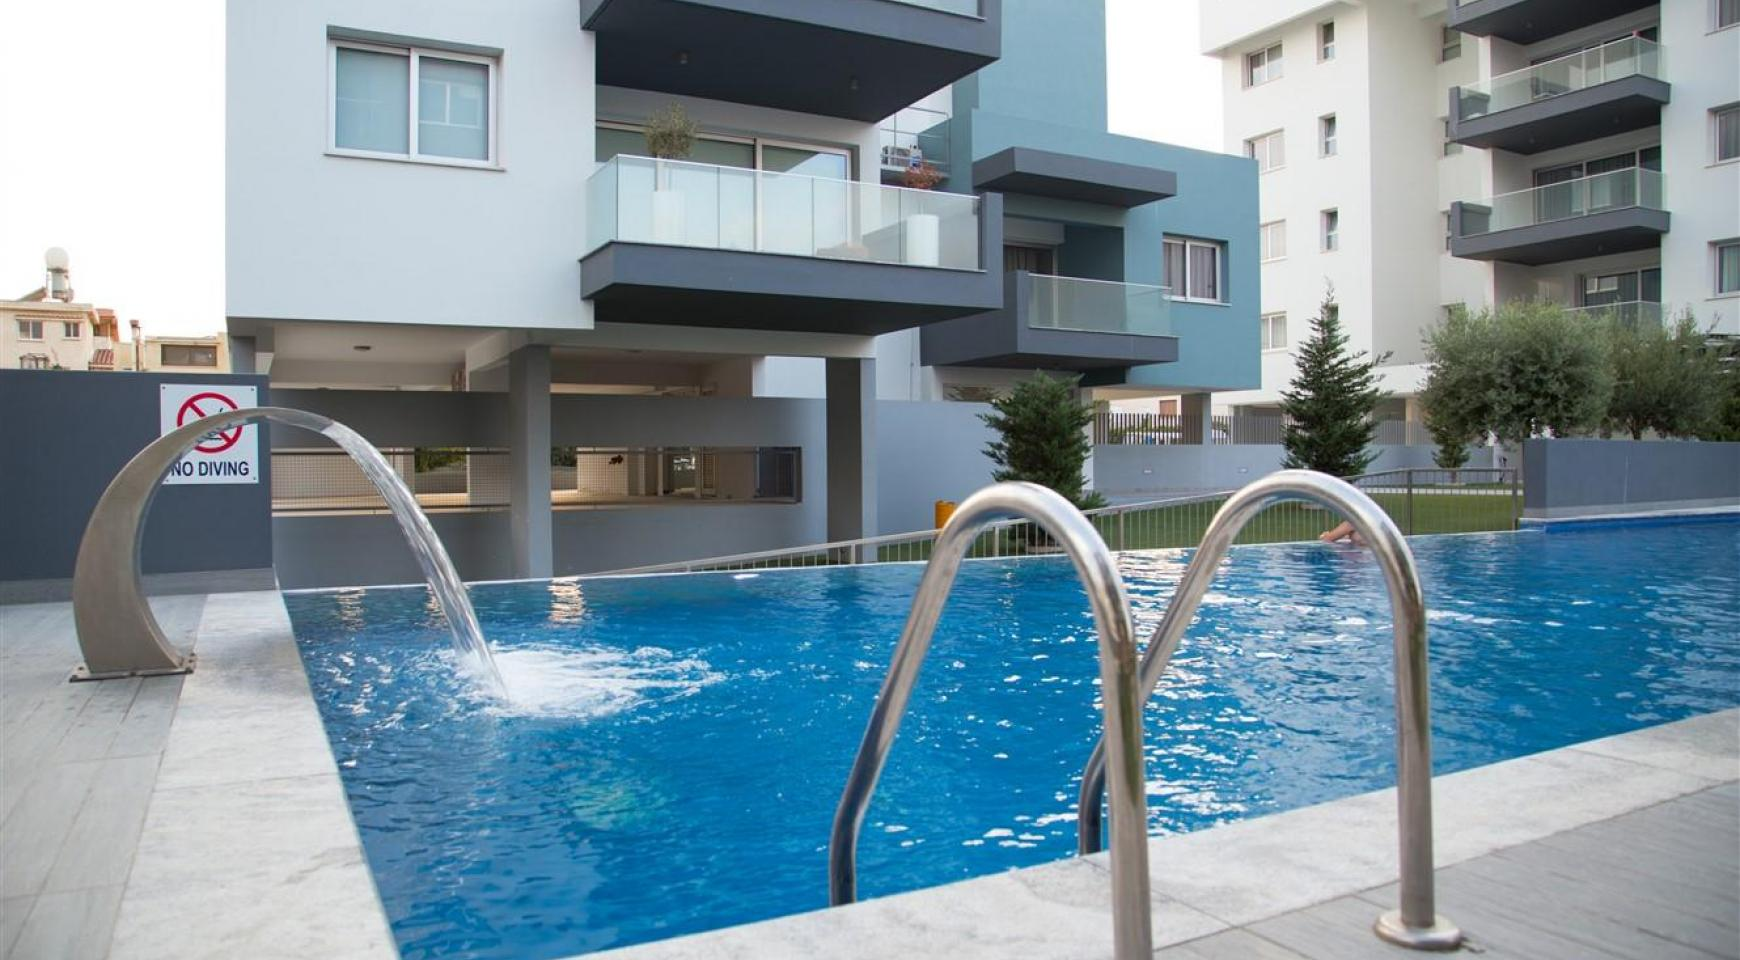 Elite 3 Bedroom Penthouse with private Swimming Pool on the Roof - 4